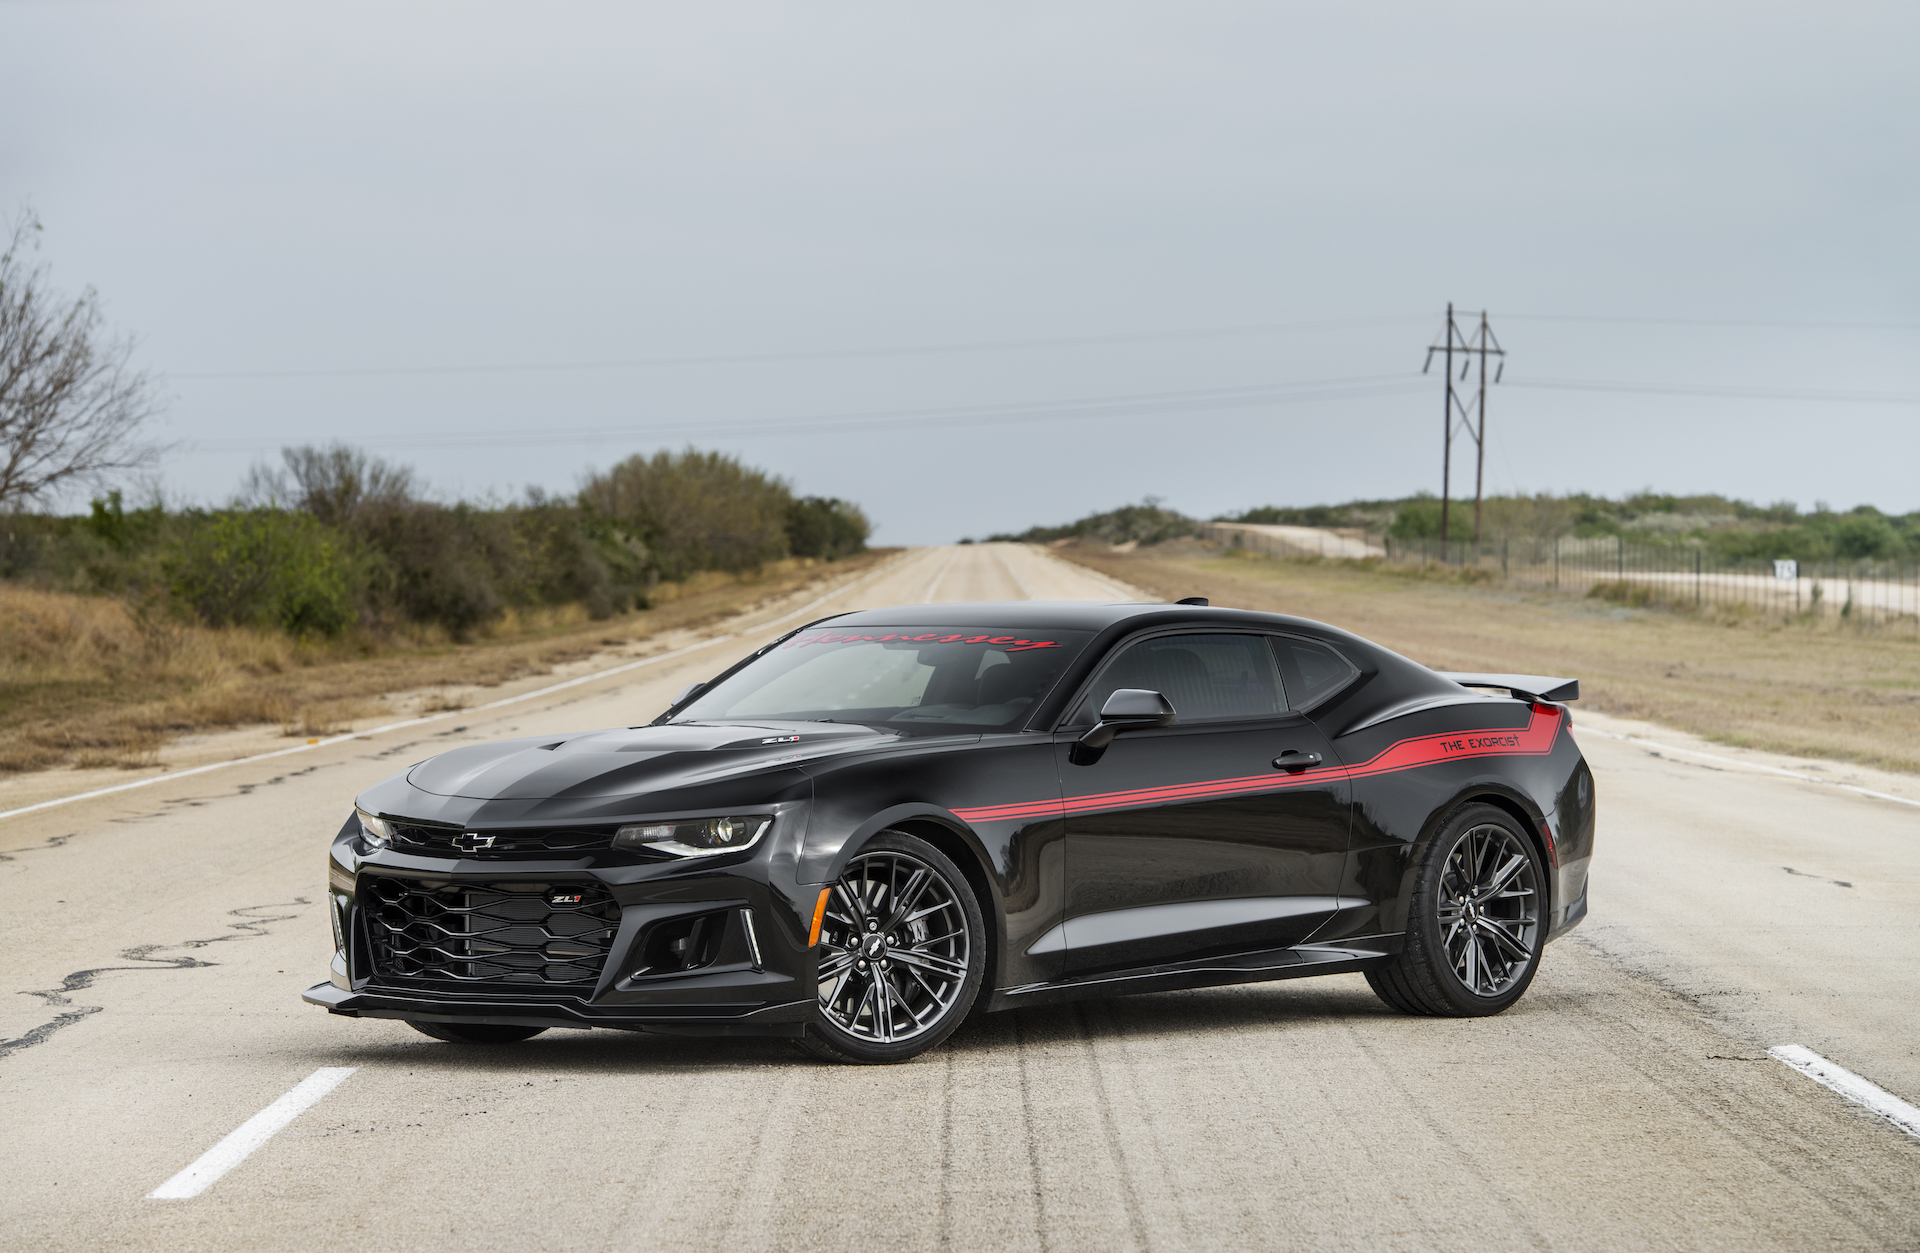 Hennessey S Exorcist Camaro Is Quicker In The 1 4 Mile Than The Dodge Demon